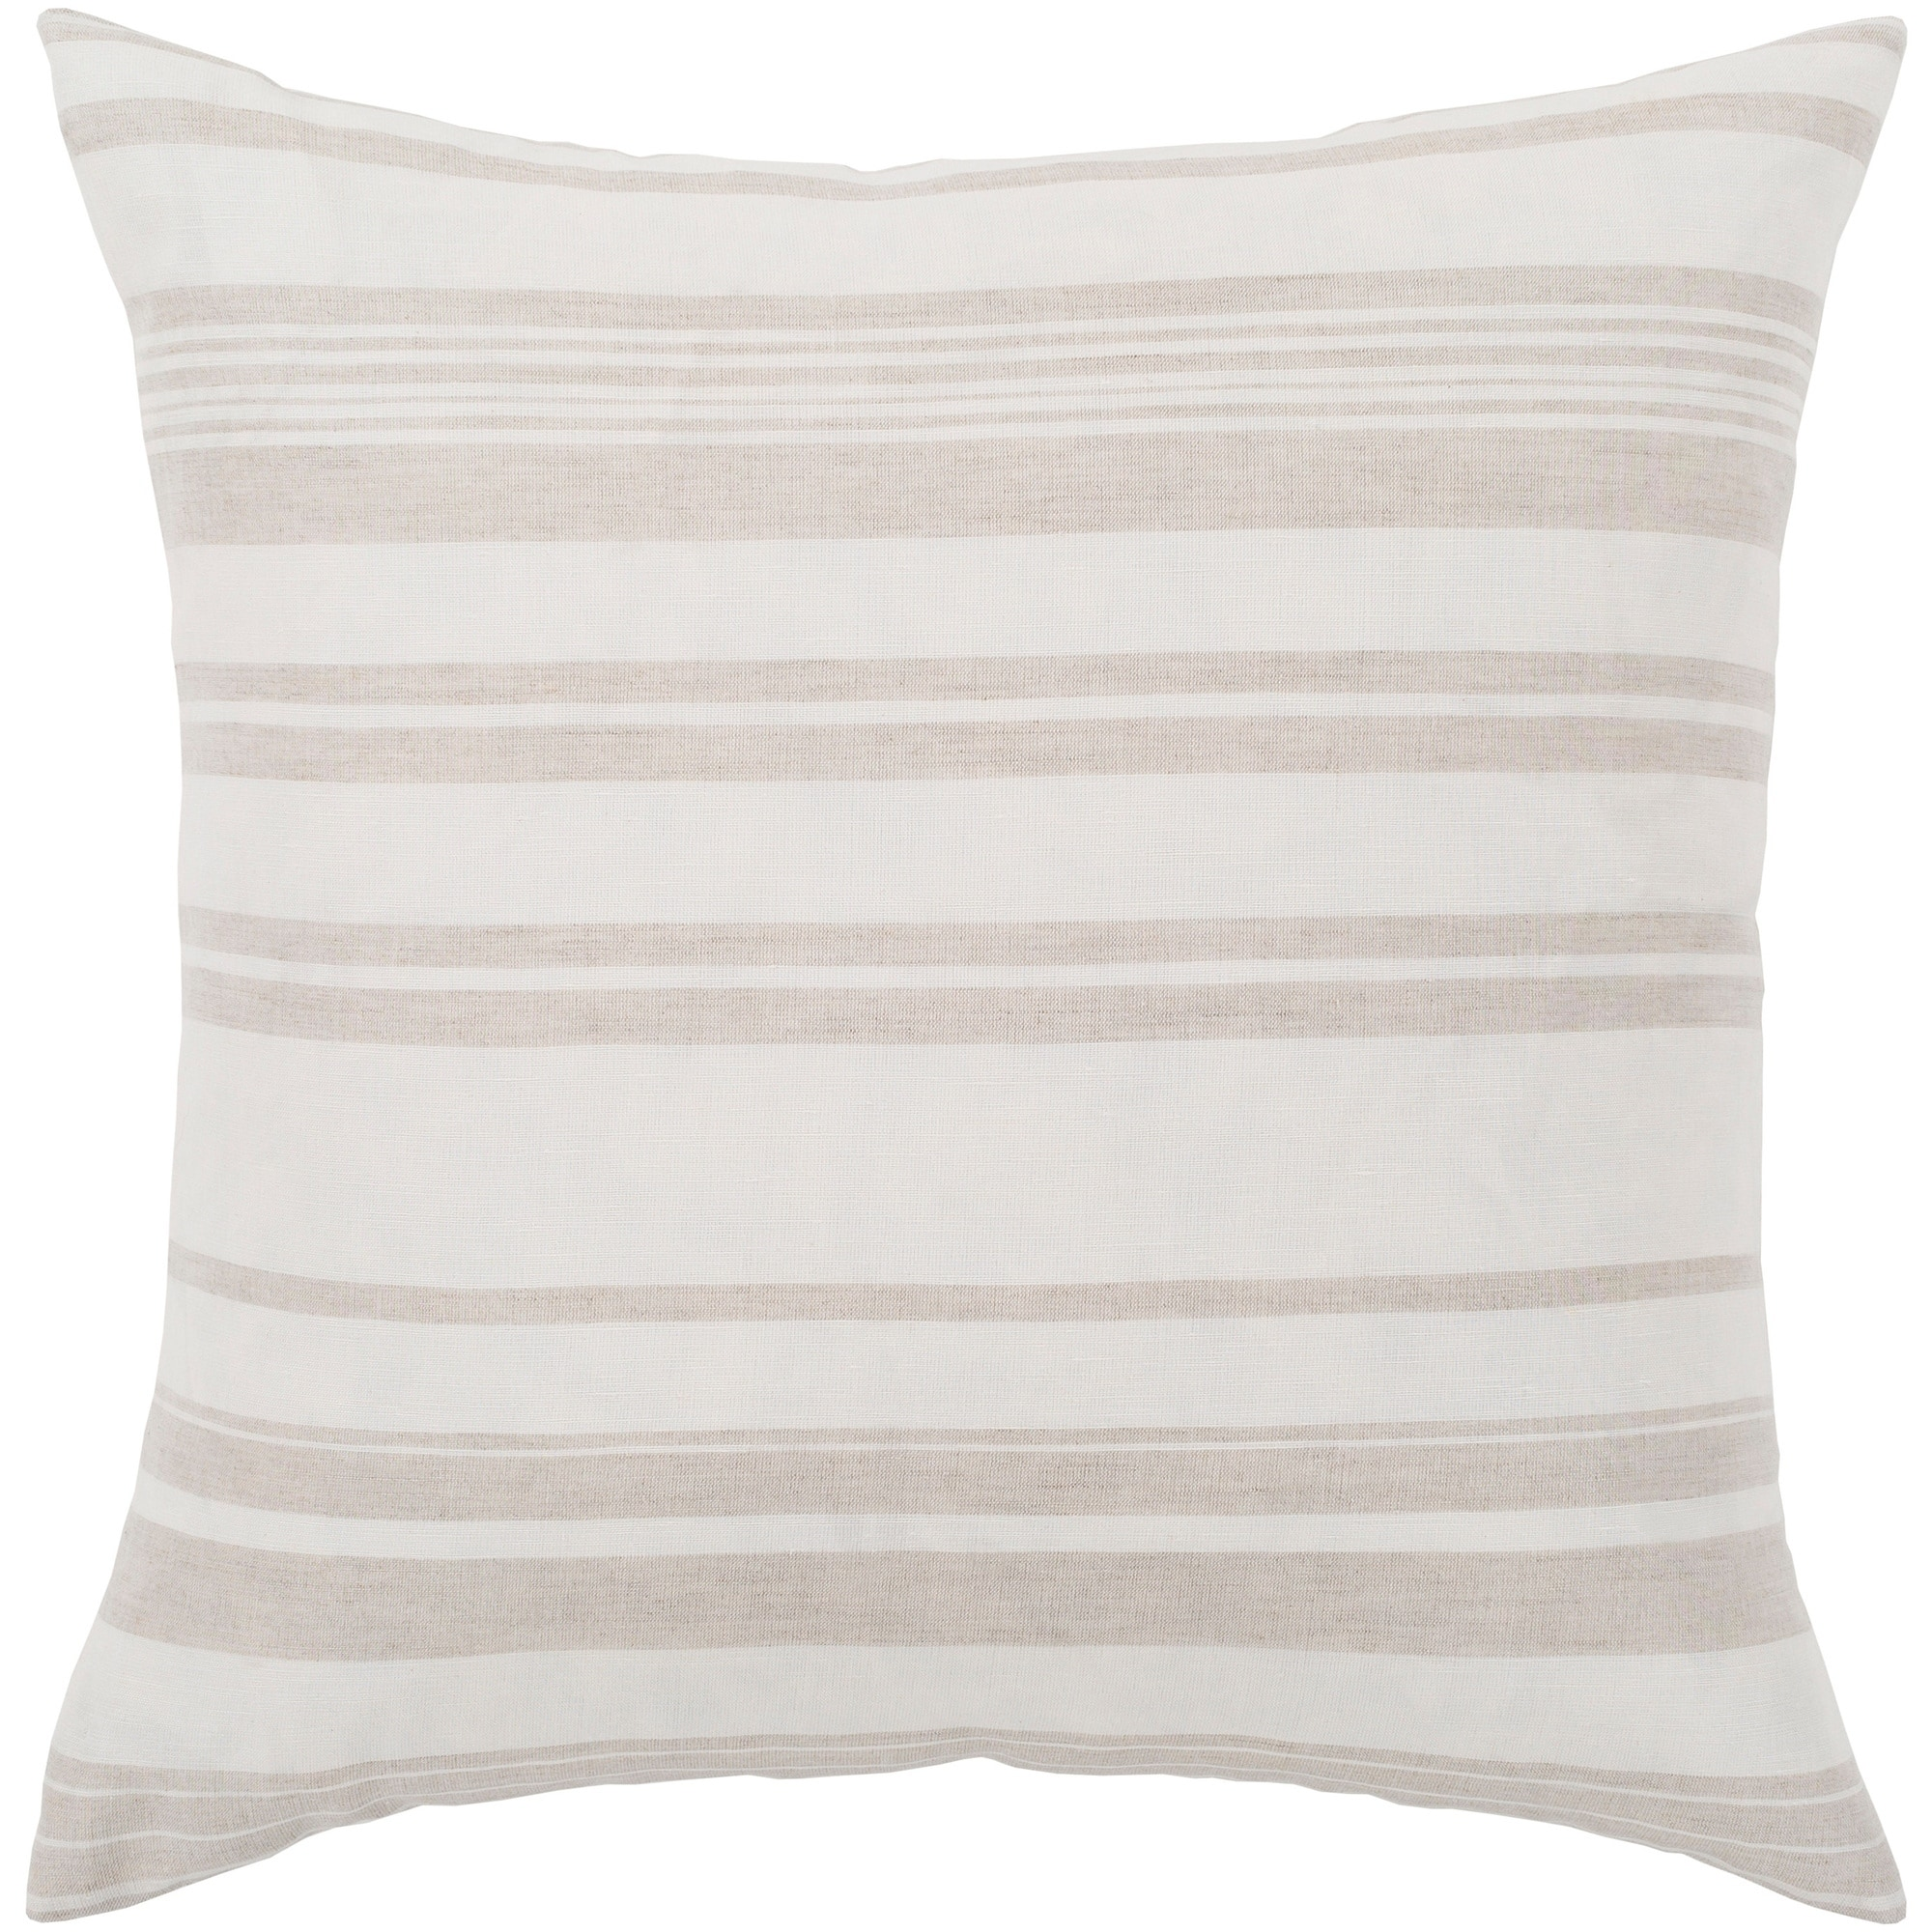 Shop Lawson Ivory Beige Striped Throw Pillow Cover 20 X 20